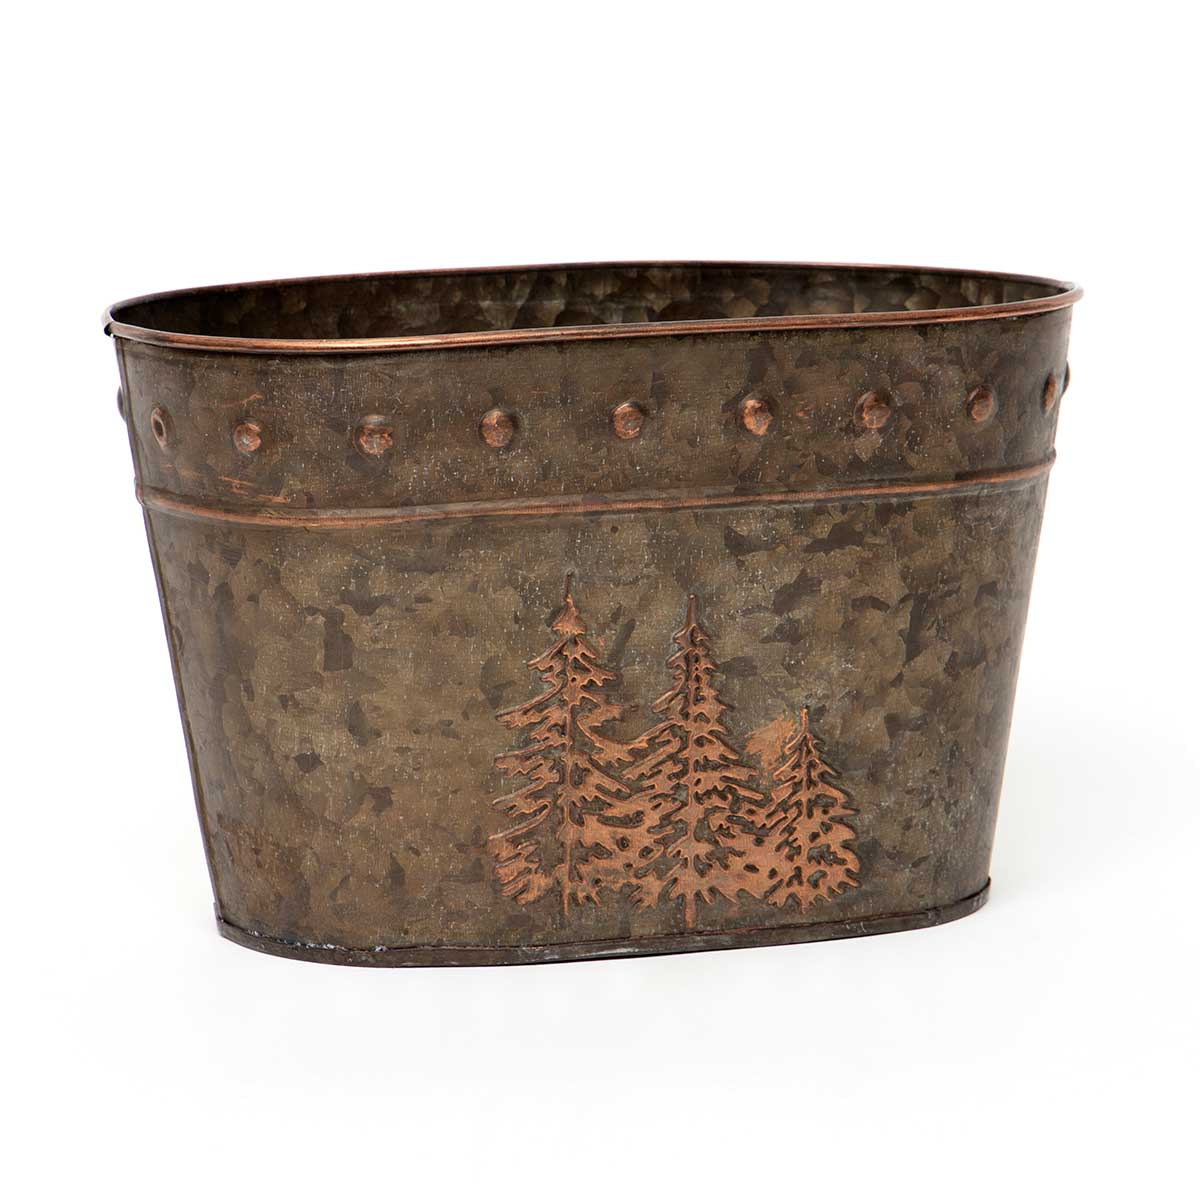 OVAL BRONZE FINISH METAL BUCKET